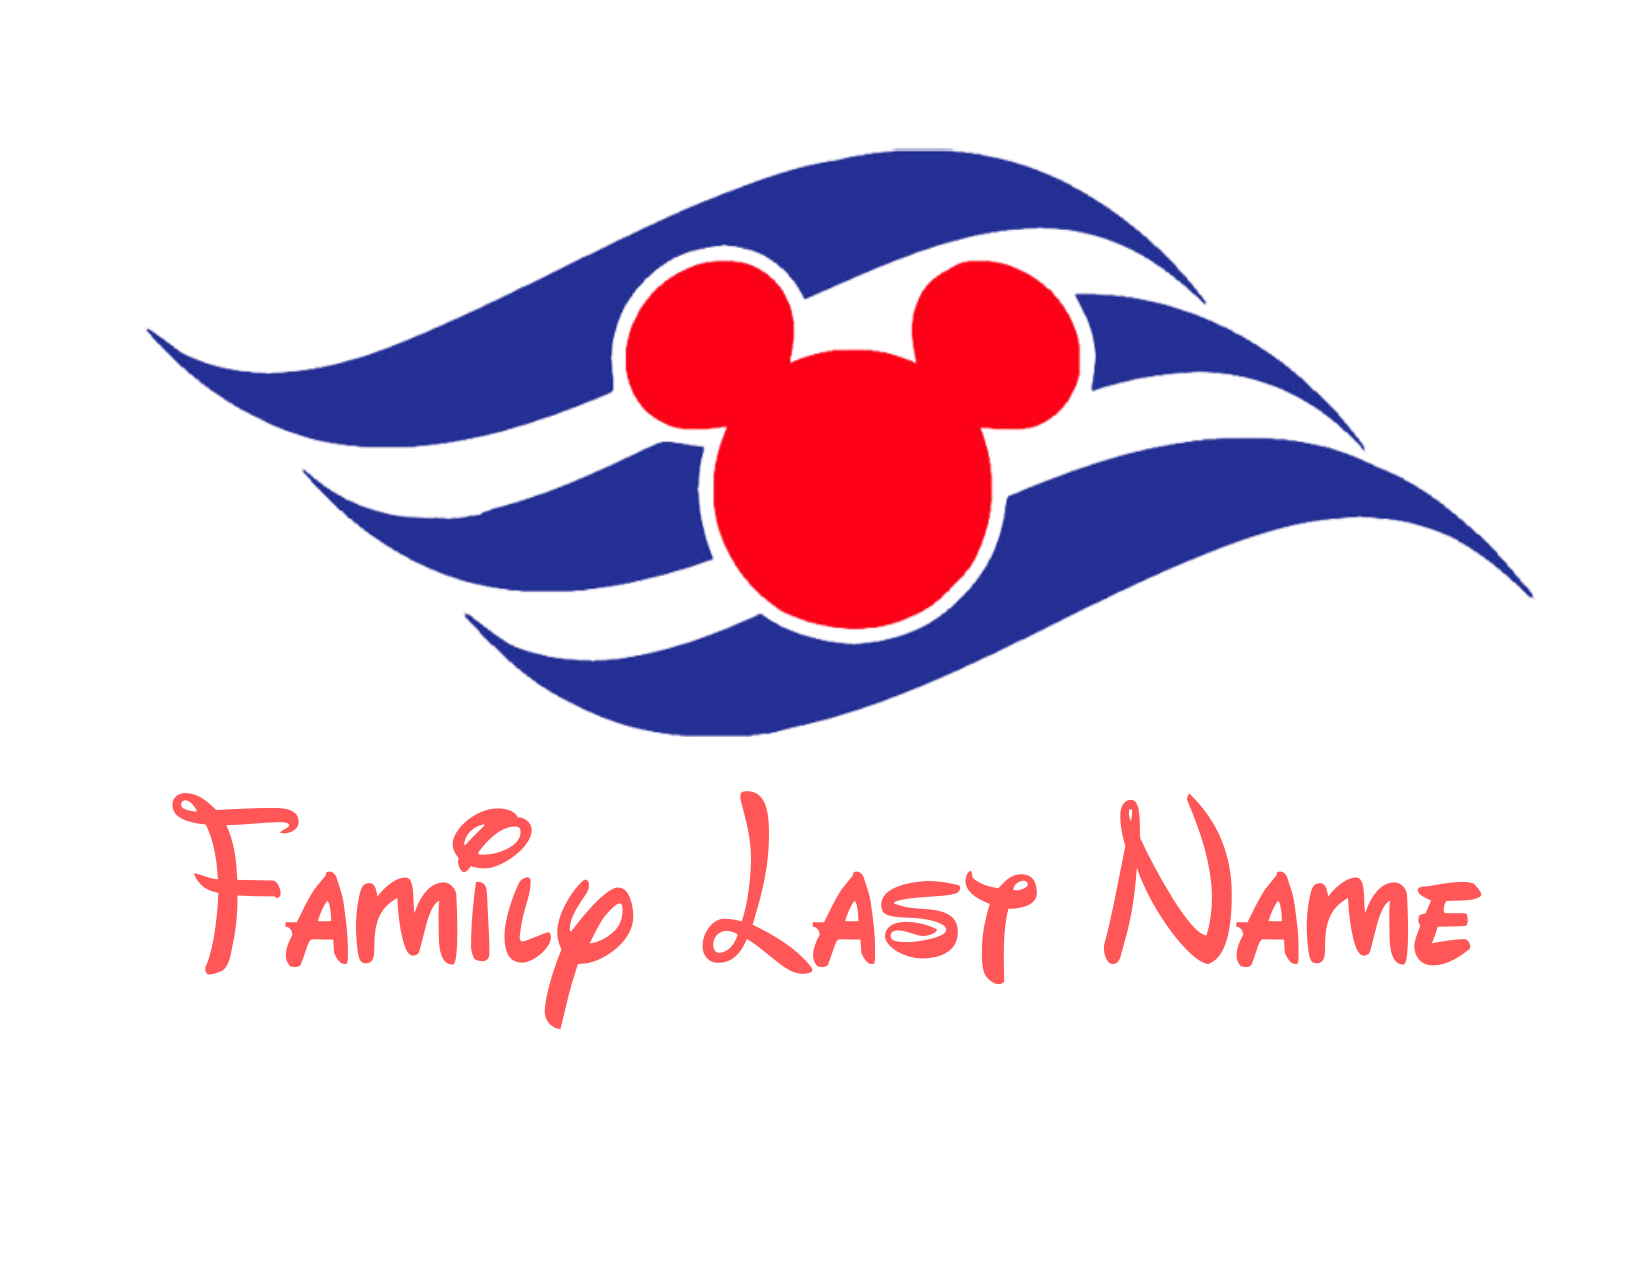 Family Disney Cruise Line Magnet Created by JA Creative Group